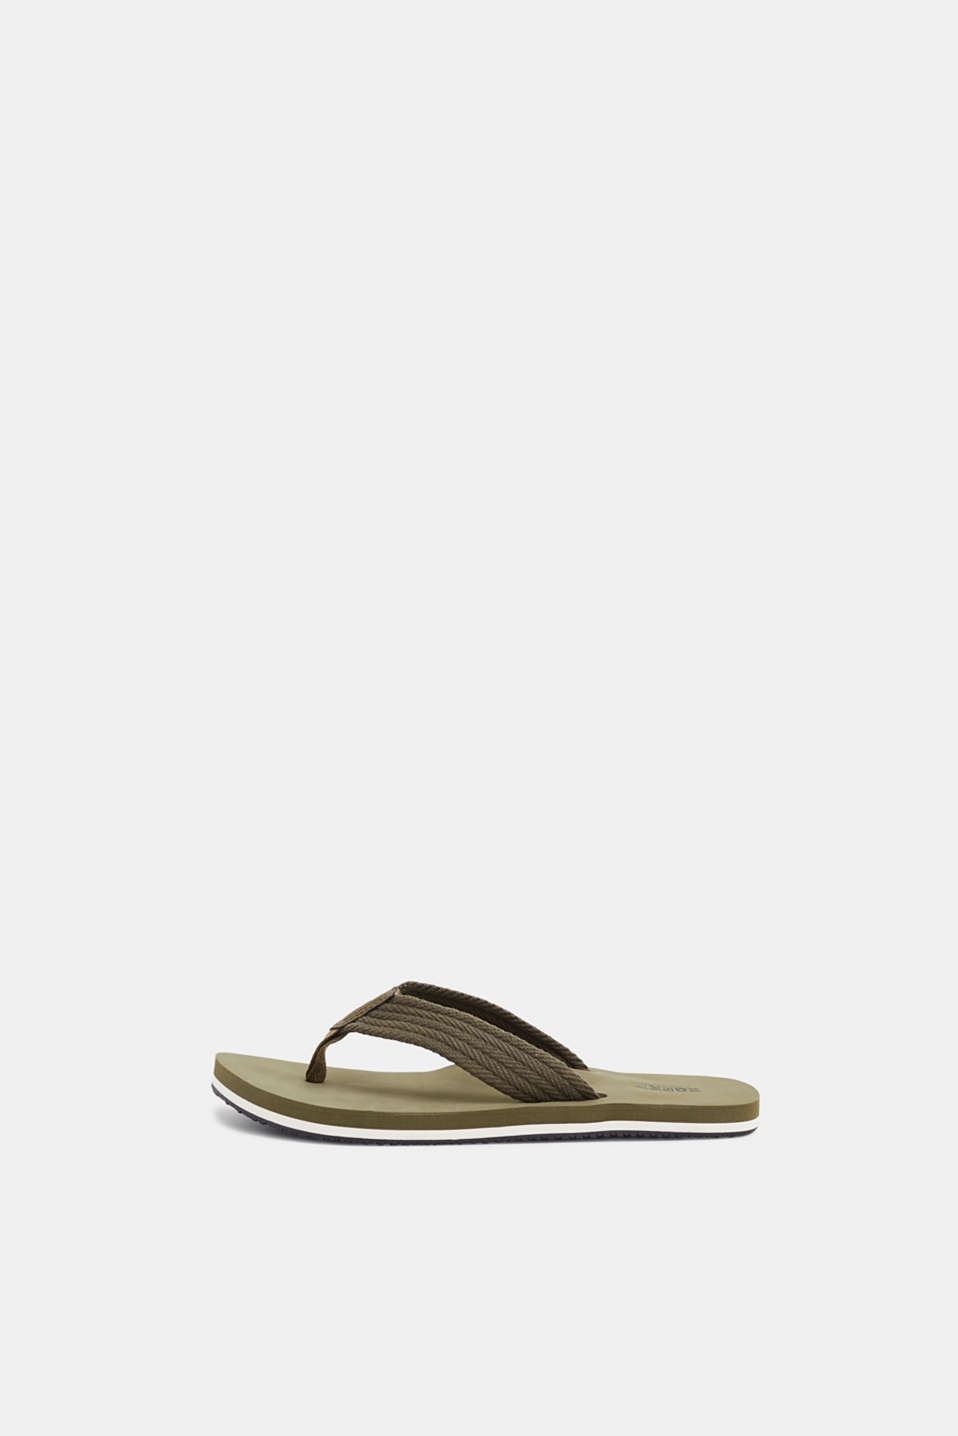 Esprit - Toe-post sandals with textile straps